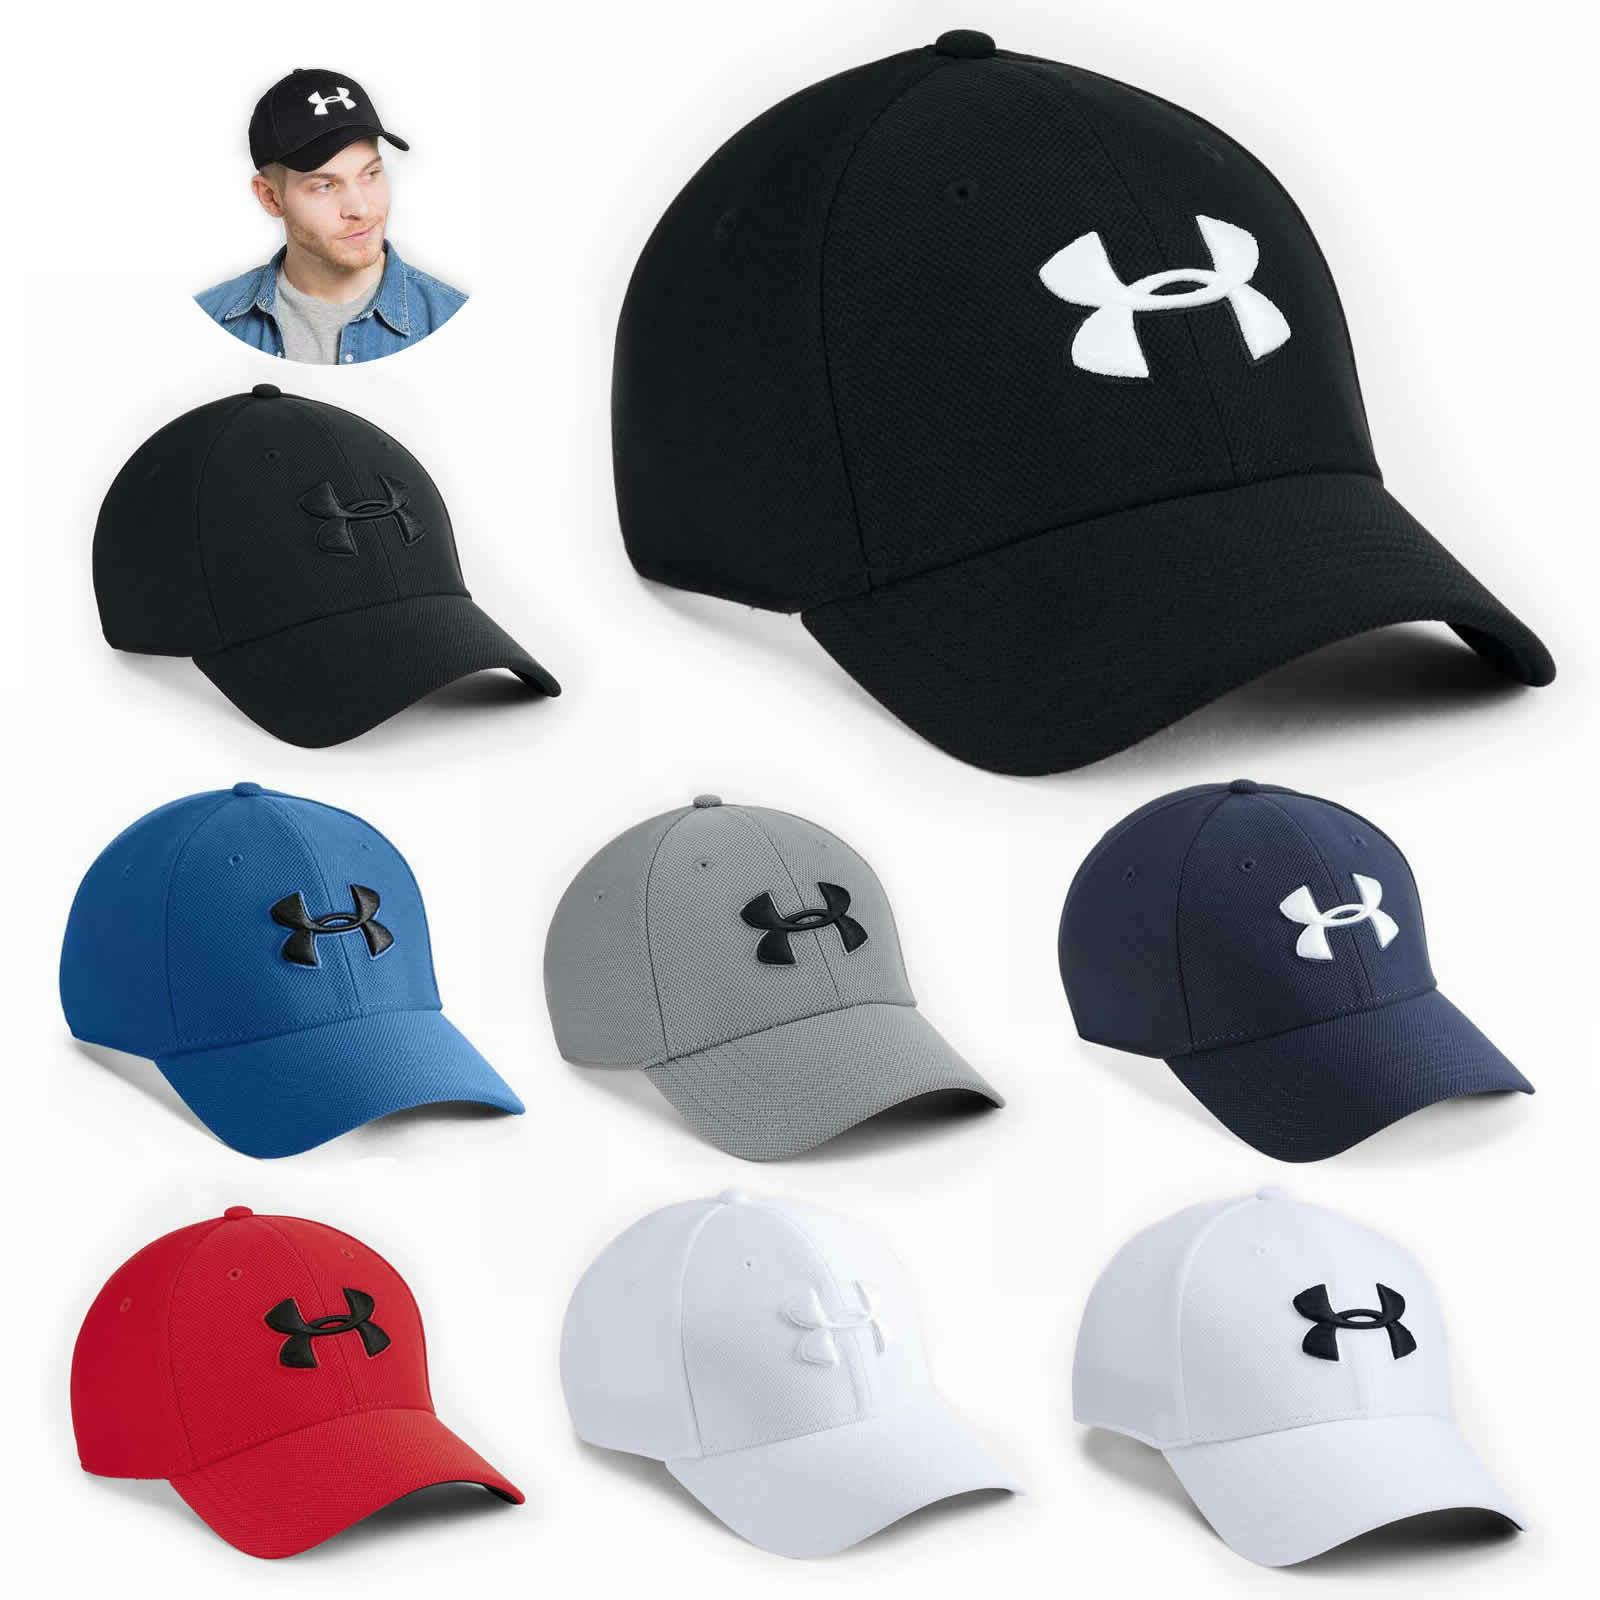 new under armour stretch fit golf baseball